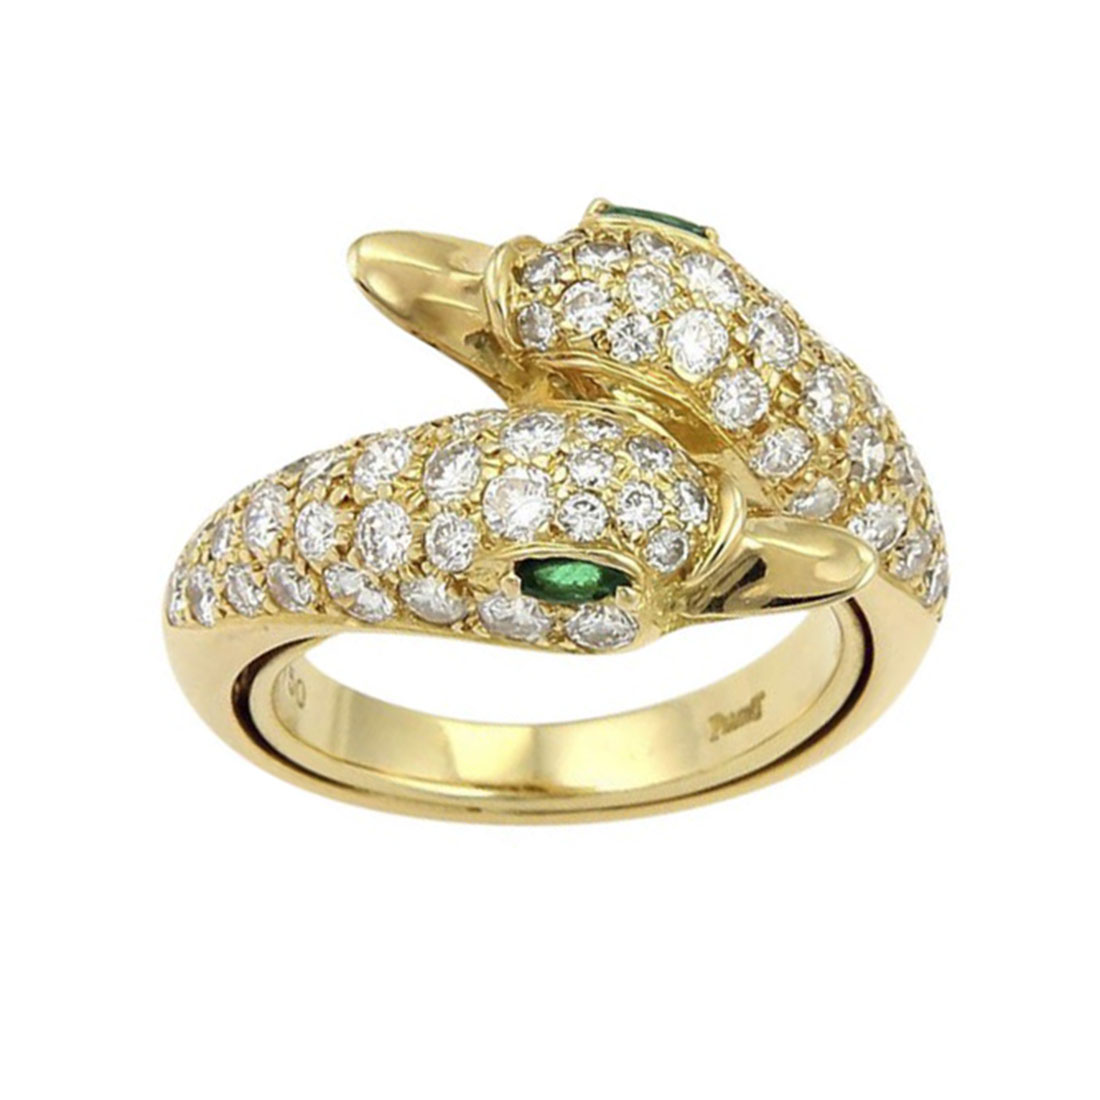 """Image of """"Piaget 18K Yellow Gold Diamonds & Emerald Swan Bypass Ring Size 4.75"""""""